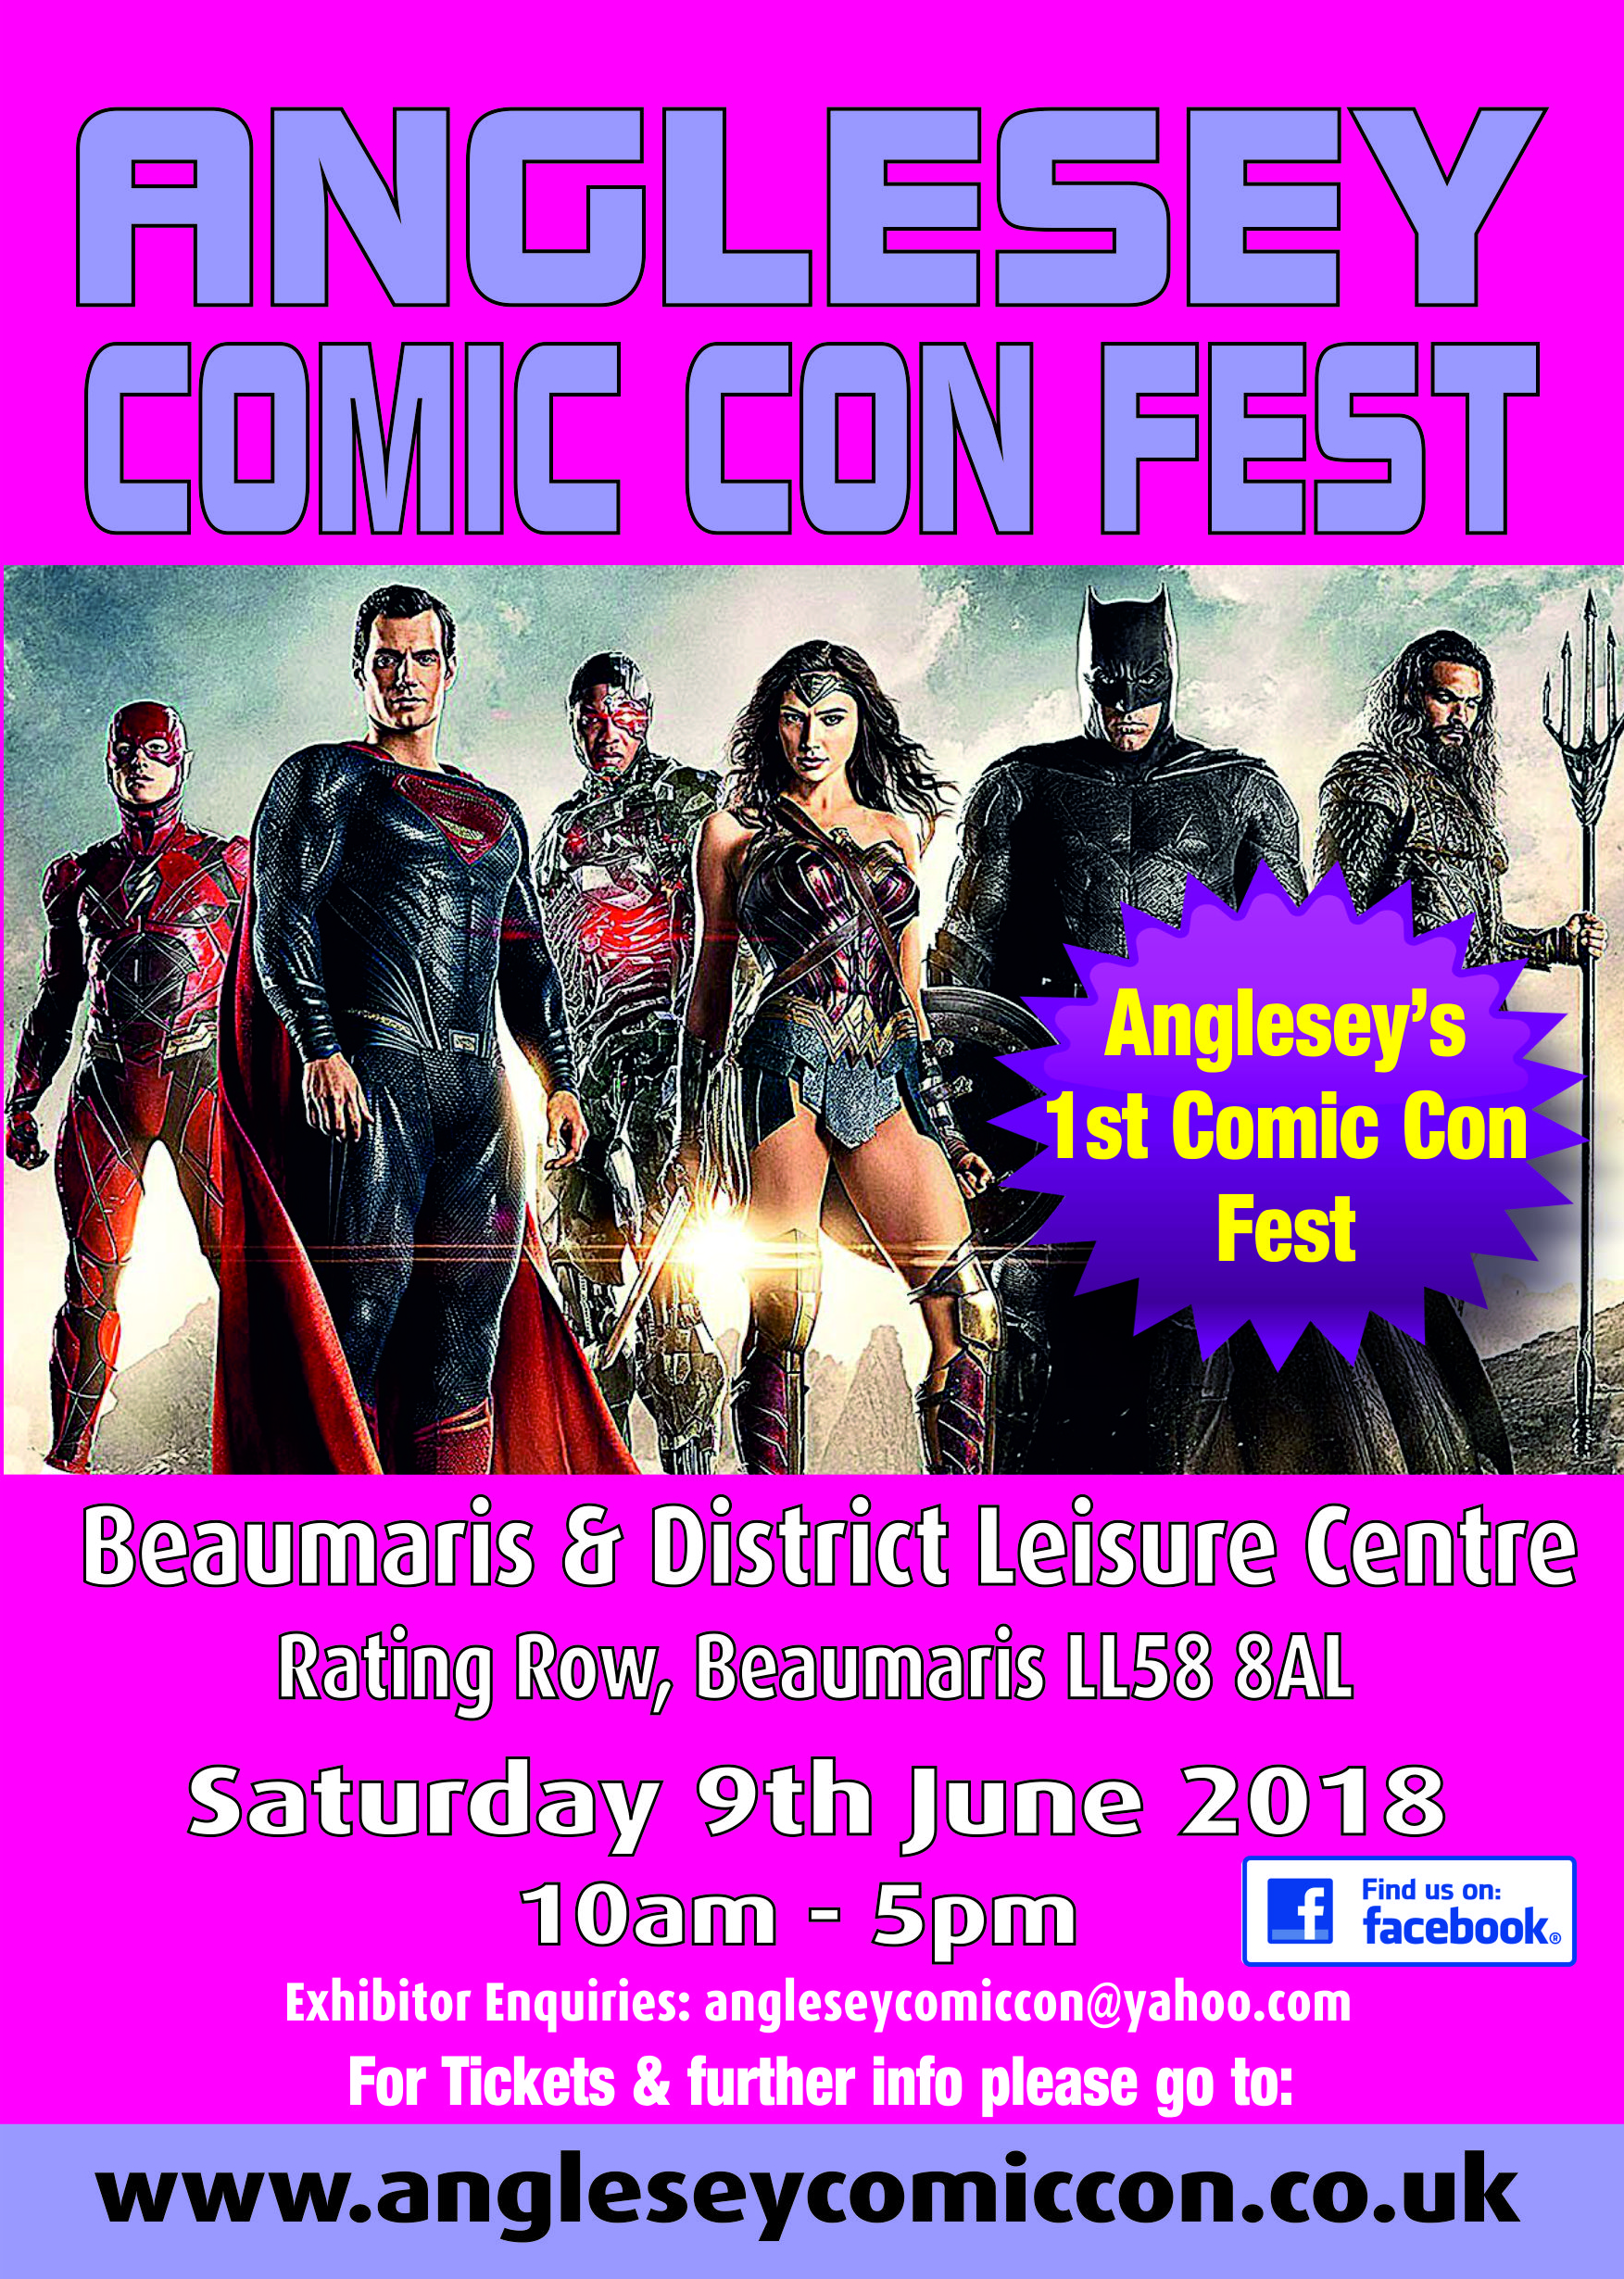 Anglesey's Very First Premiere Comic Con Event